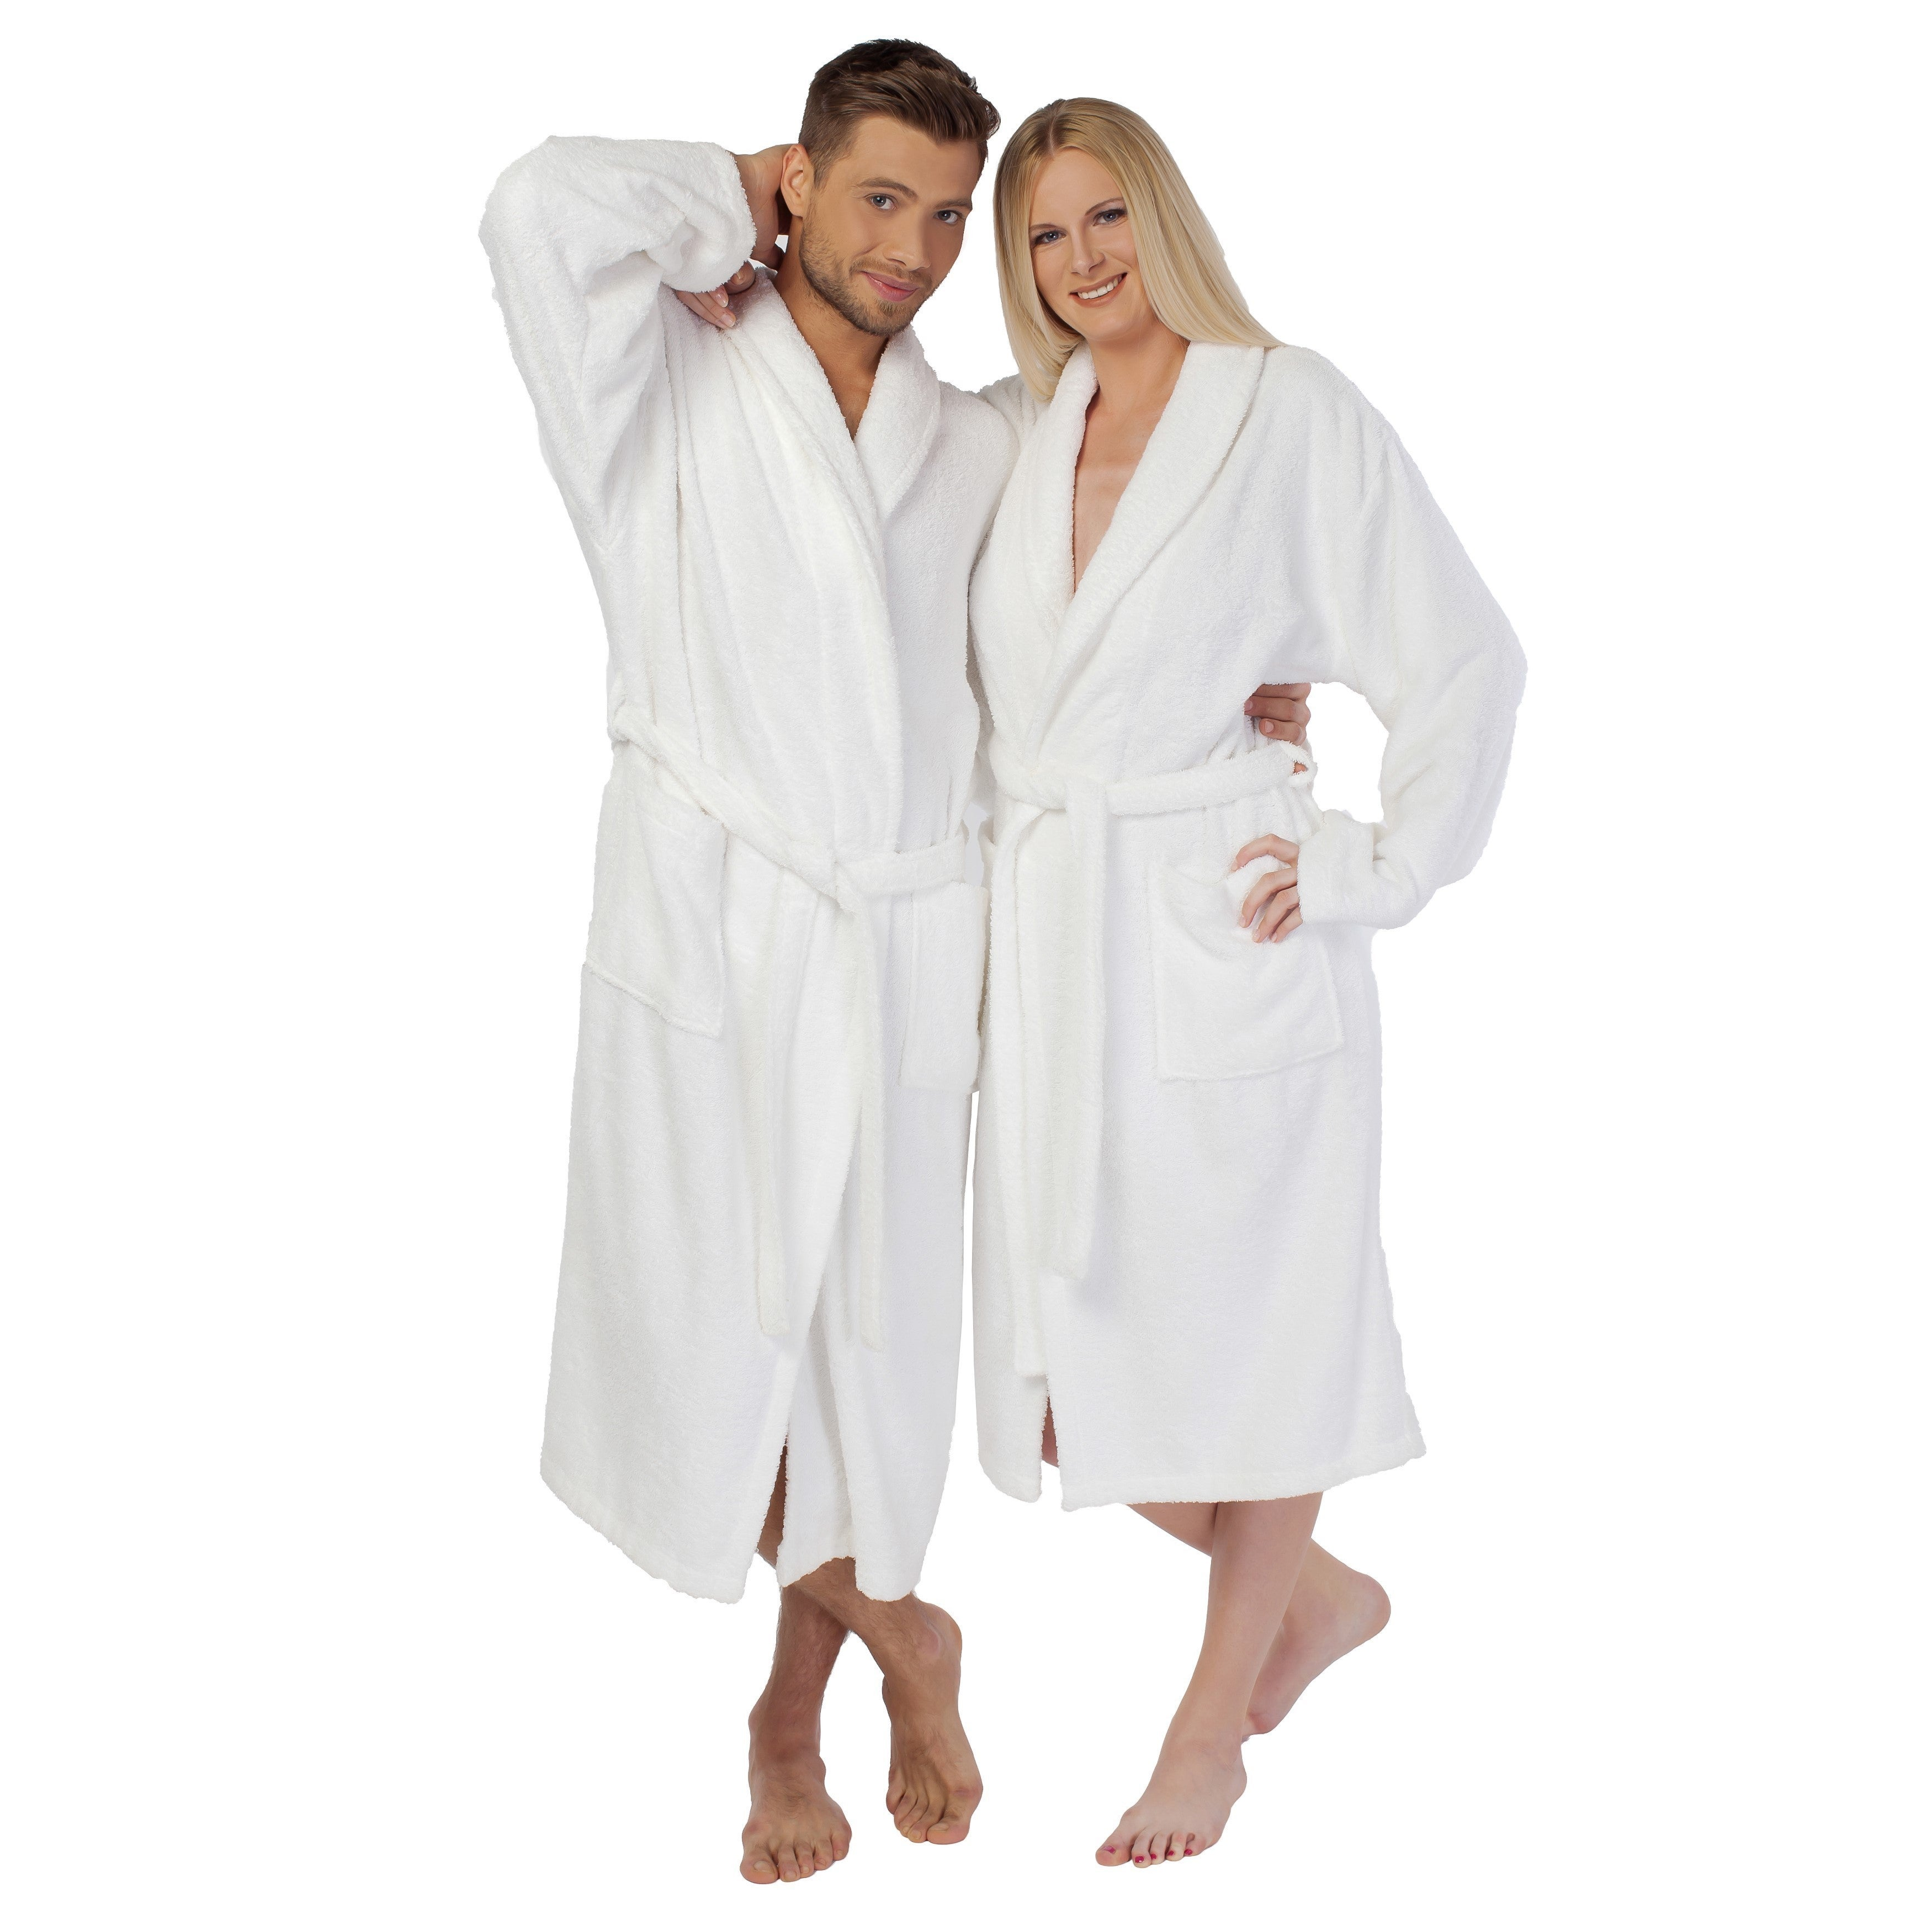 2fedefec62 Shop Authentic Hotel Spa Unisex Turkish Cotton Terry Cloth Bath Robe - Free  Shipping Today - Overstock - 4757191